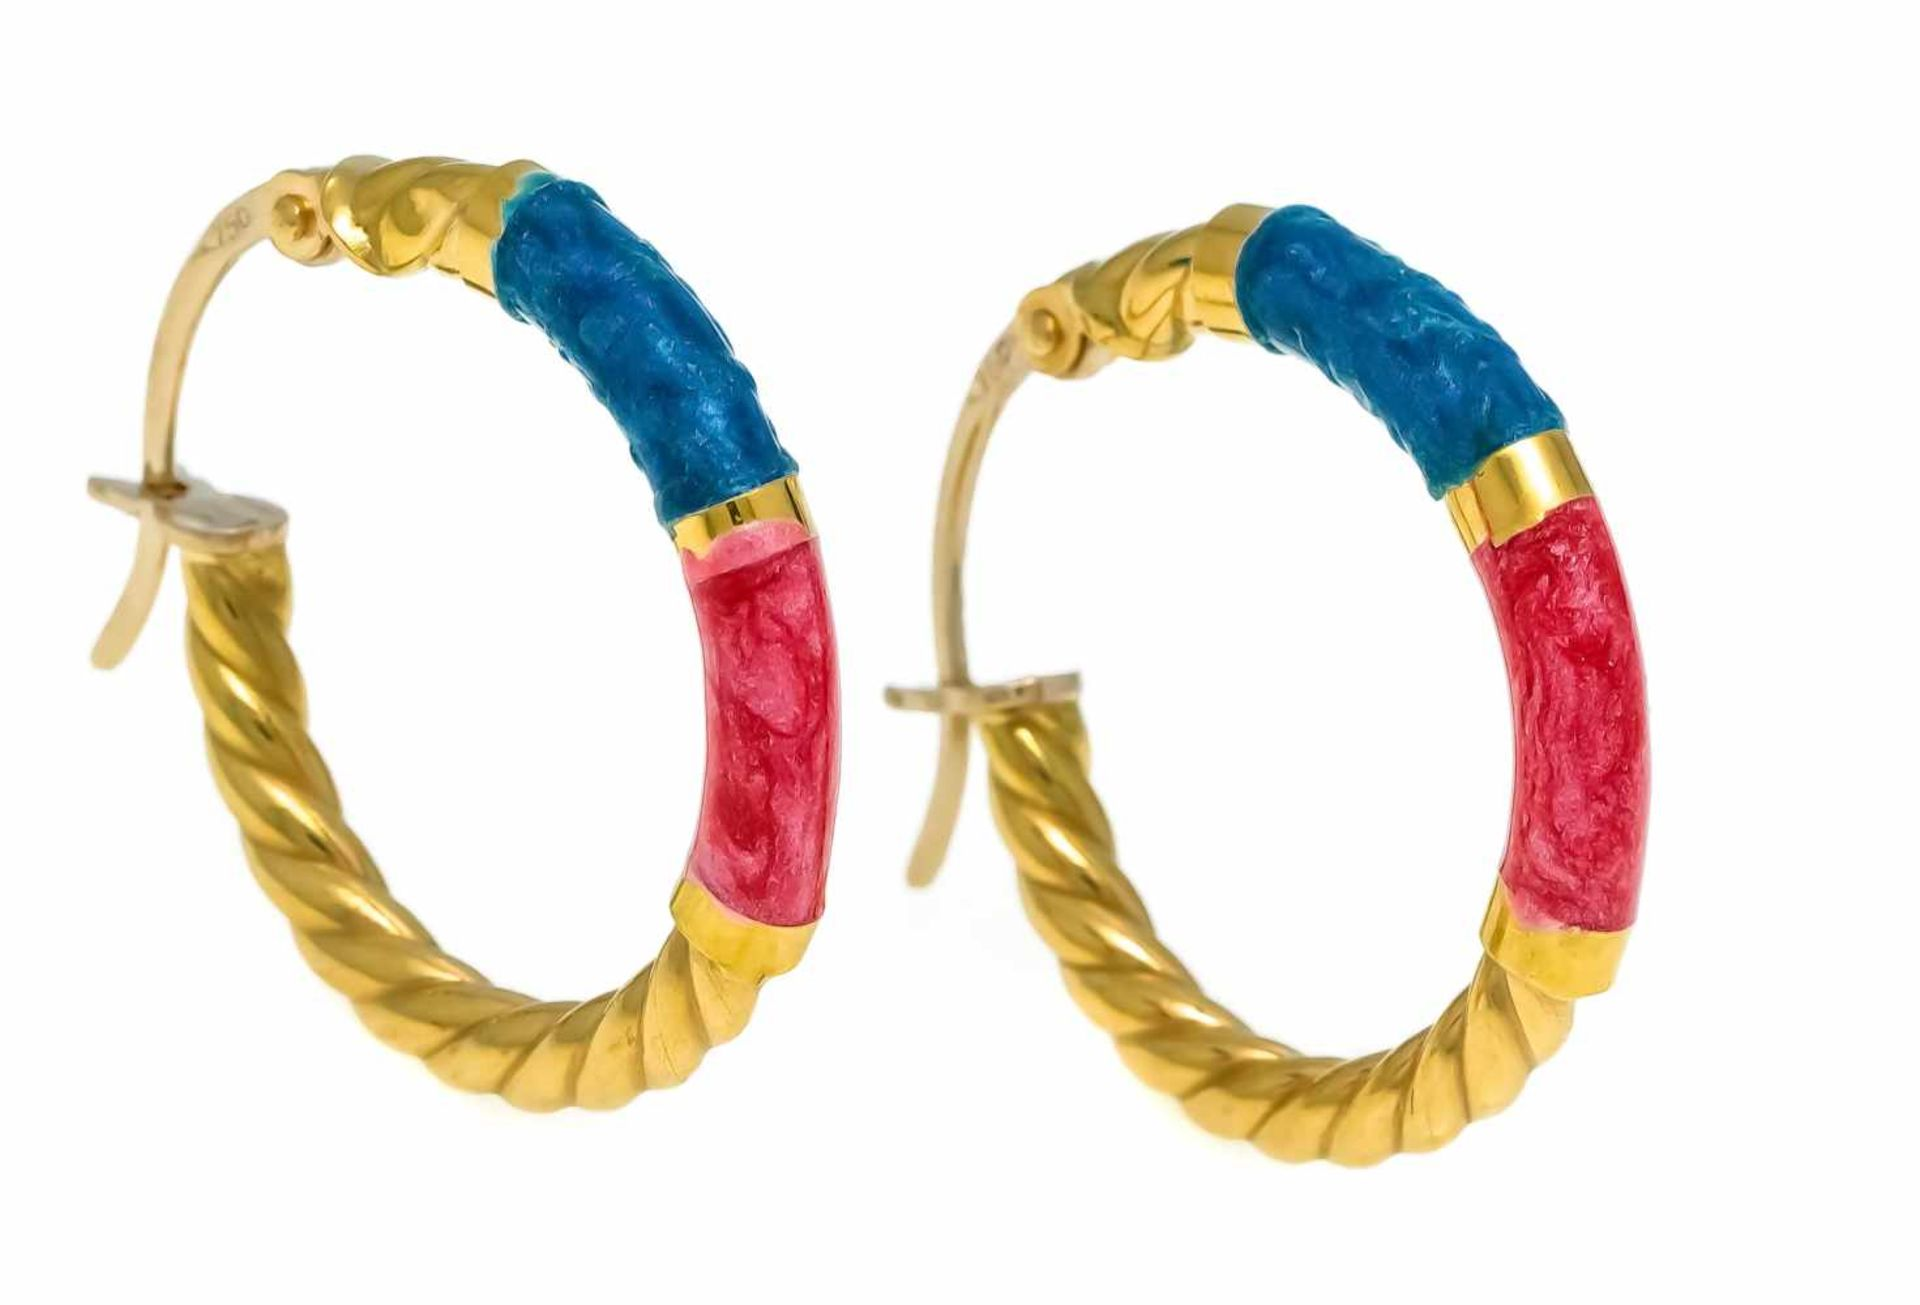 Creolen GG 750/000 mit türkiser und roter Emaille, L. 22,5 mm, 2,3 gHoop earrings GG 750/000 with